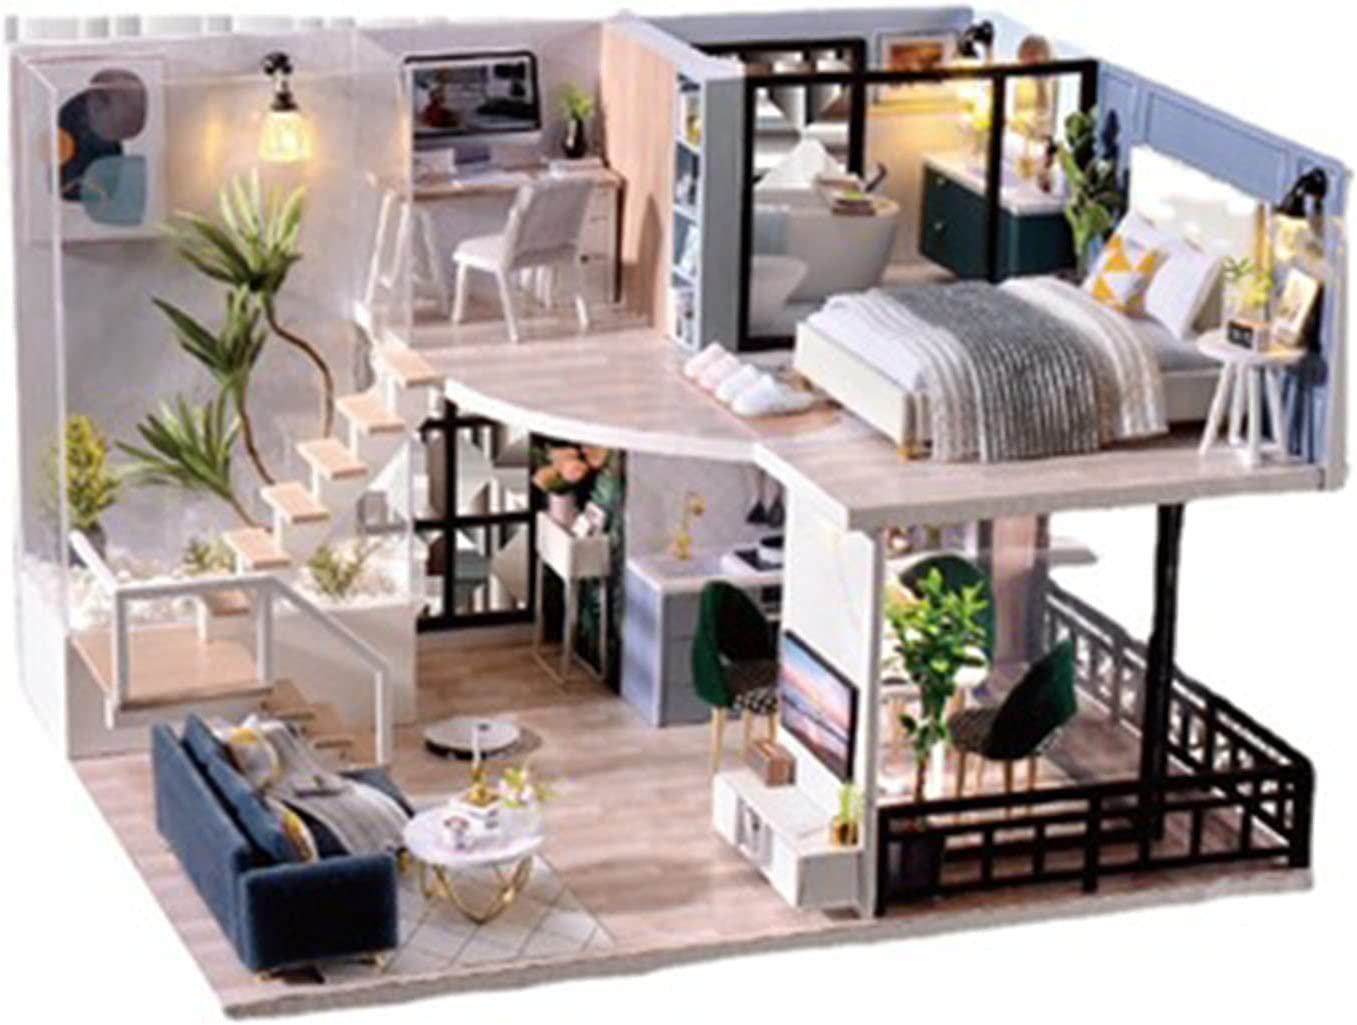 YXLYLL Children's High Large special price !! quality new Hand-Assembled Modern House Cottage DIY Style